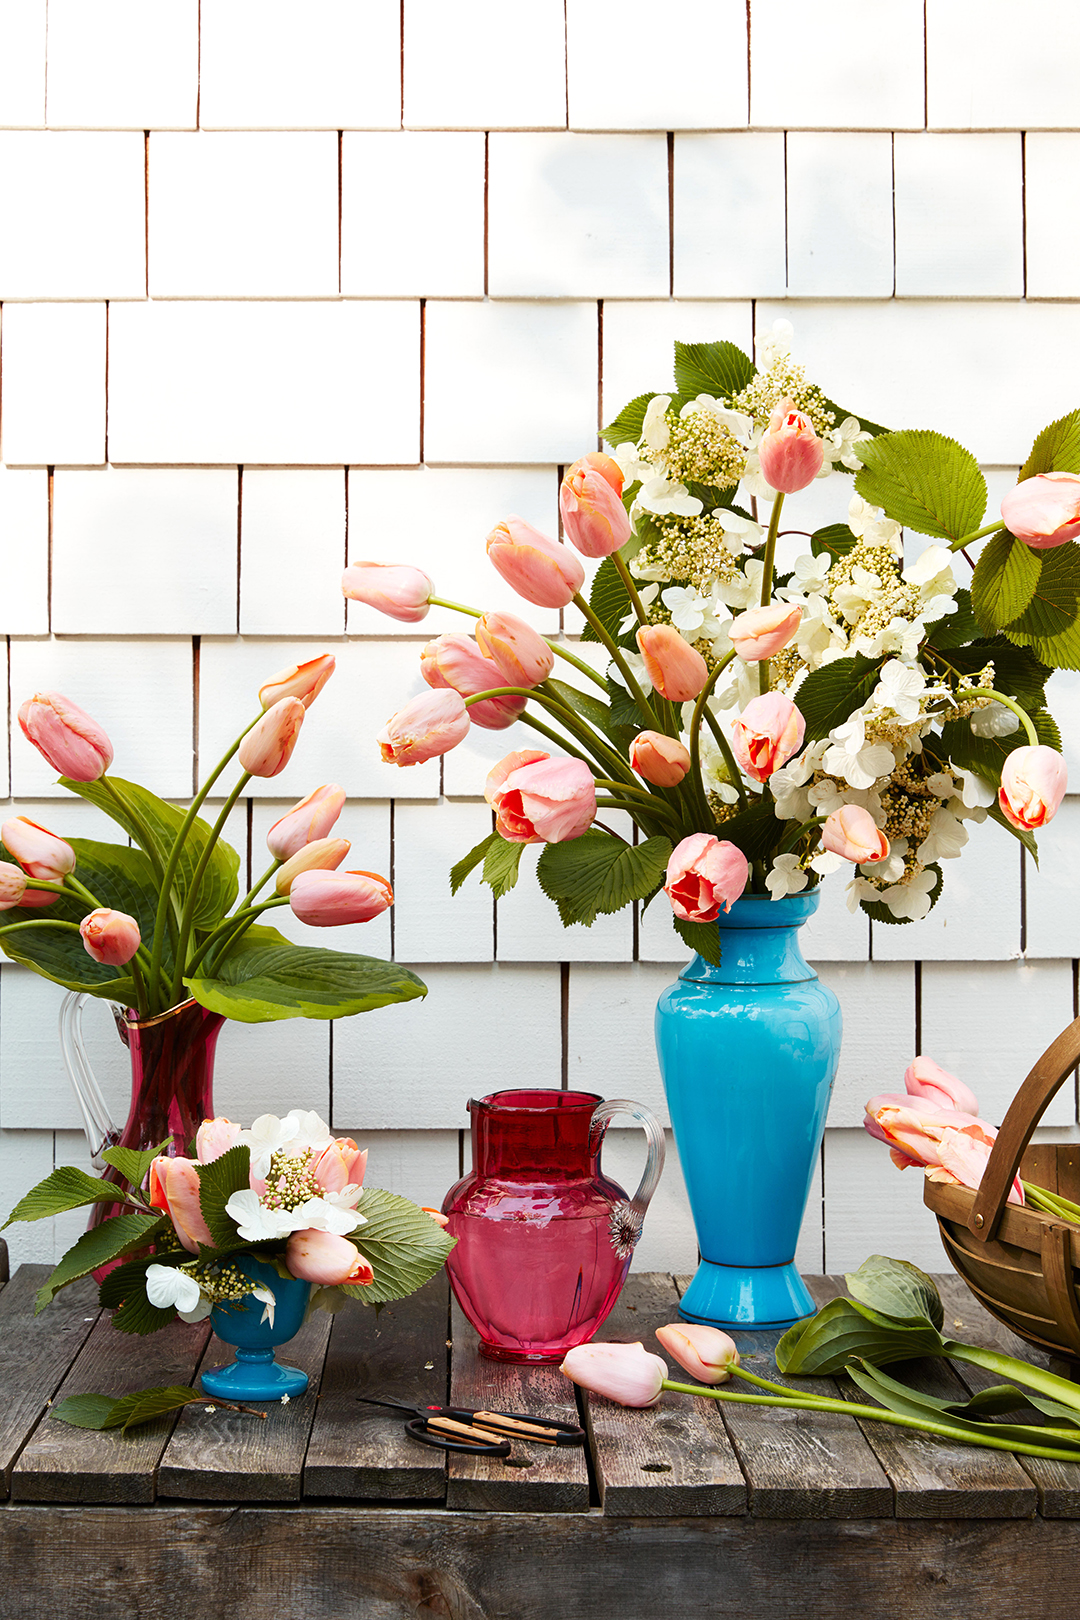 bouquets of tulips on wooden table